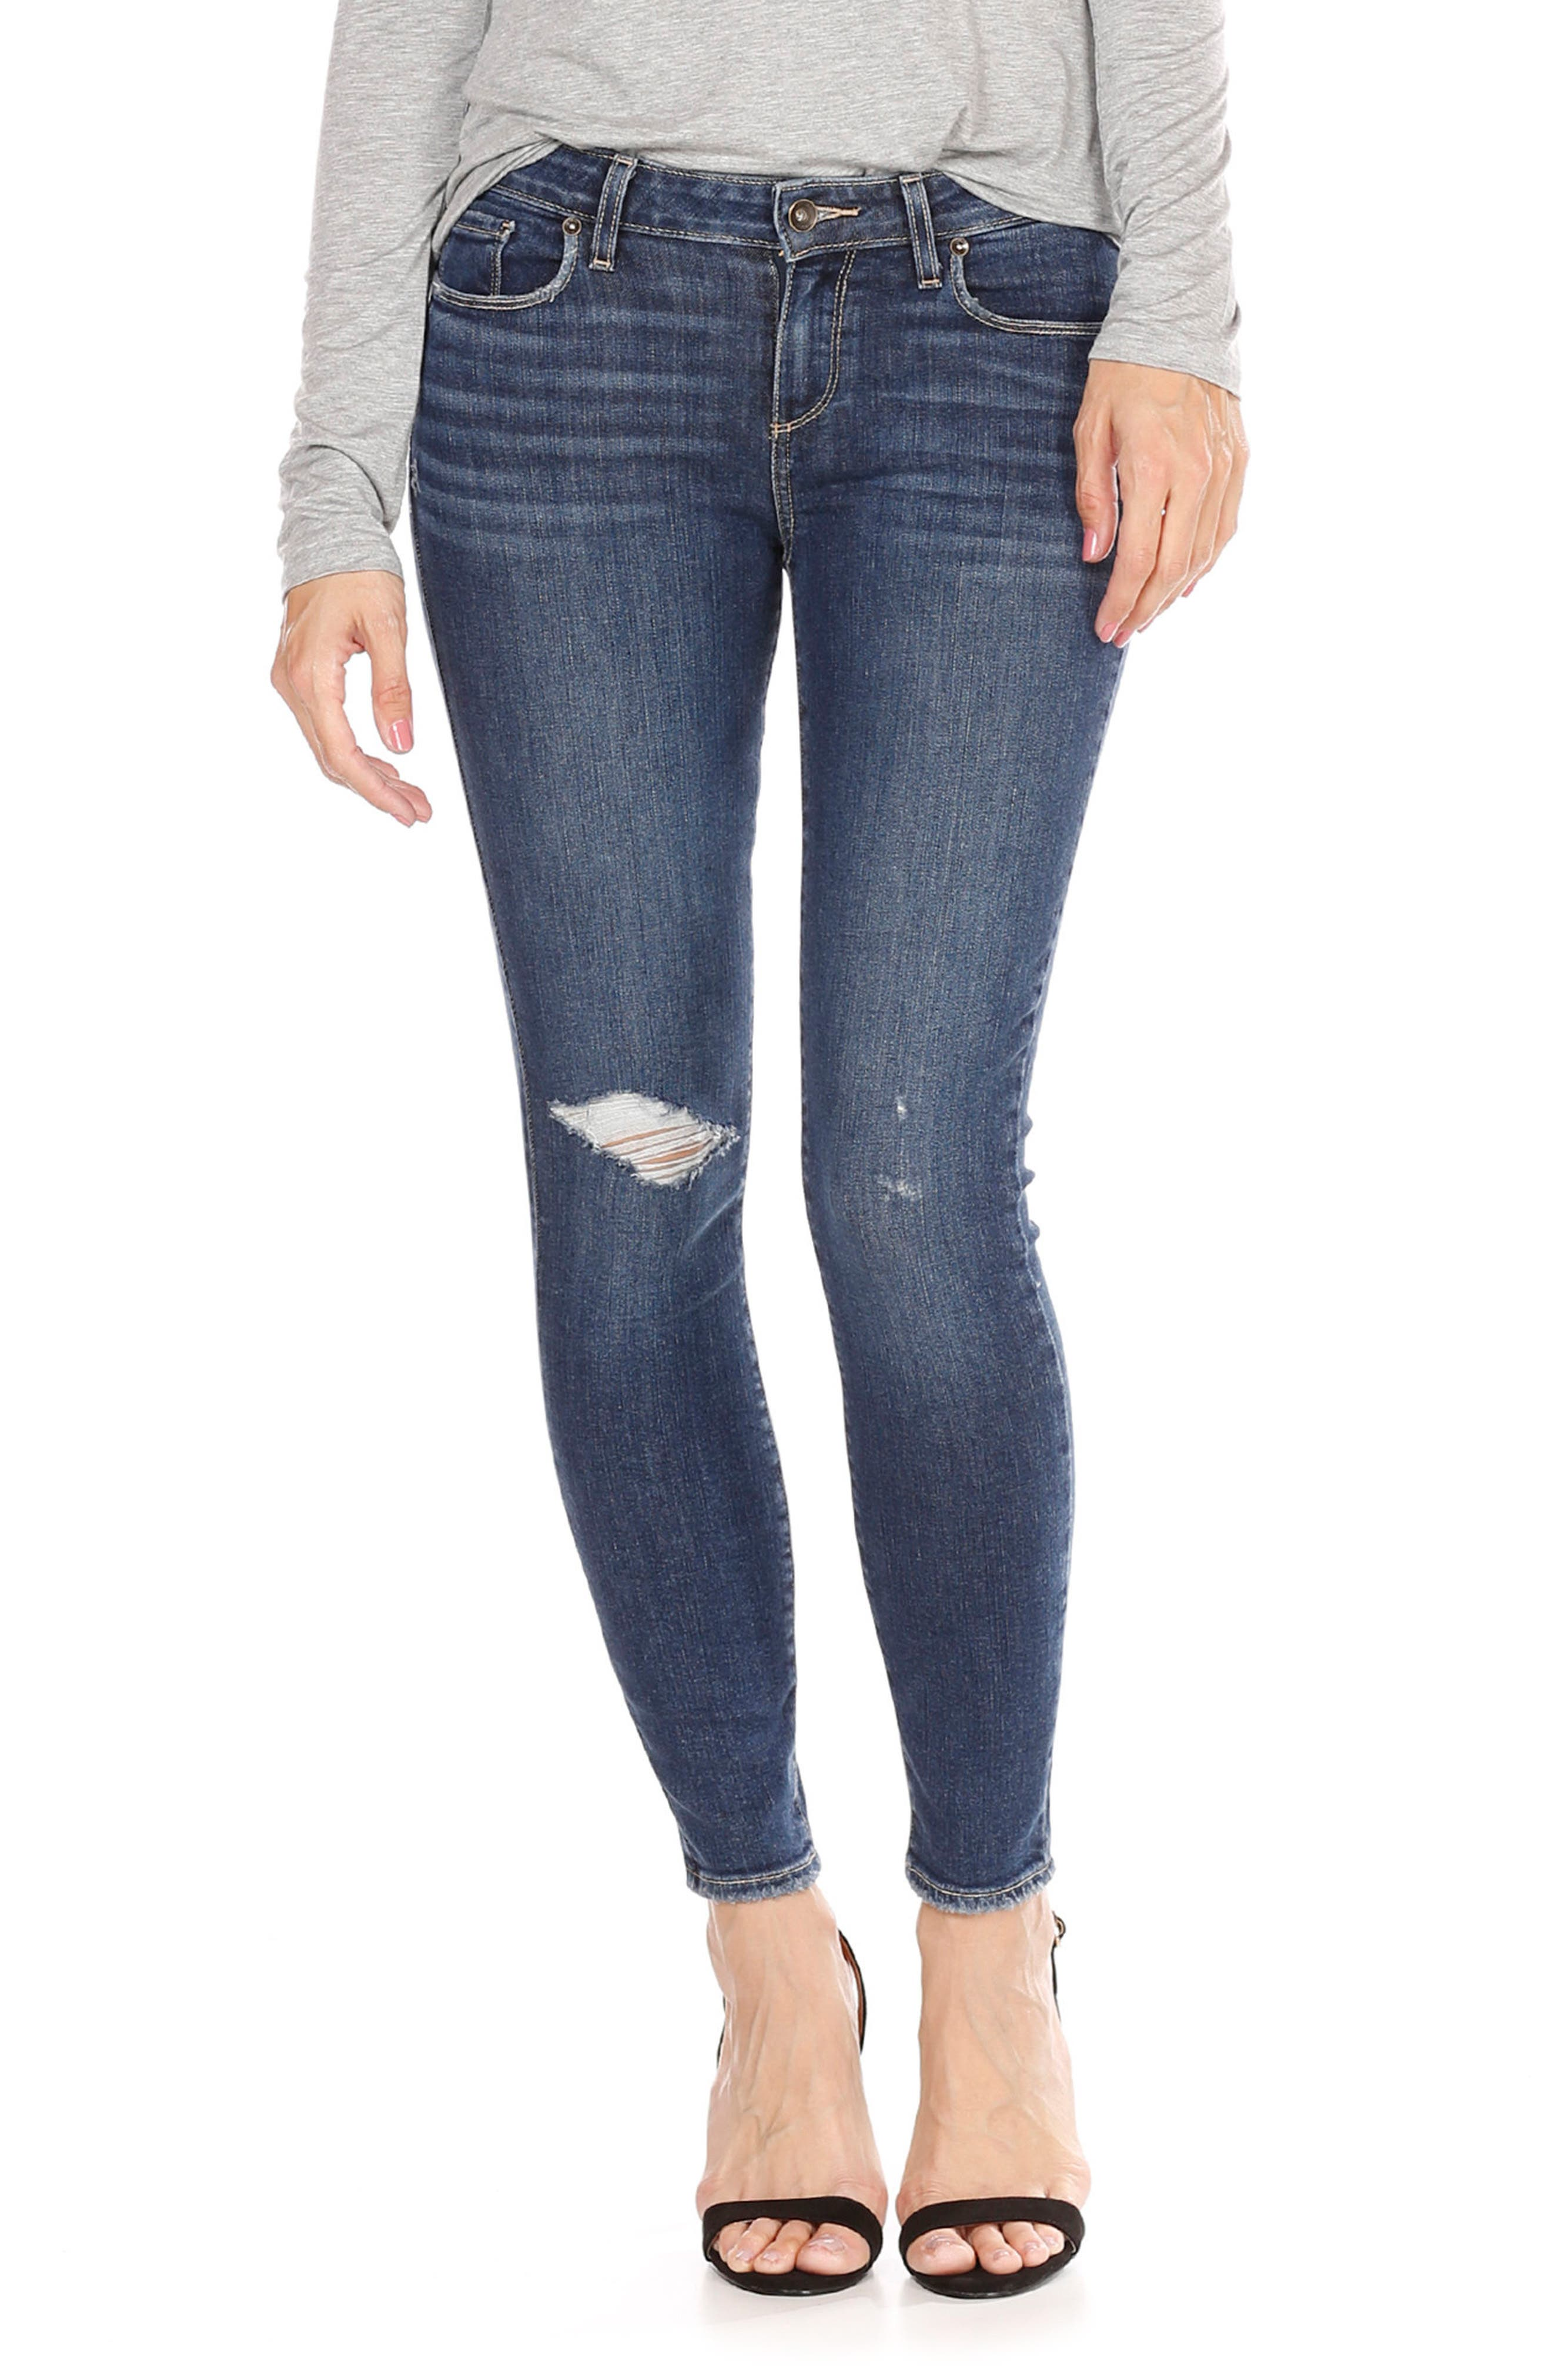 Verdugo Ripped Ankle Skinny Jeans,                             Main thumbnail 1, color,                             400